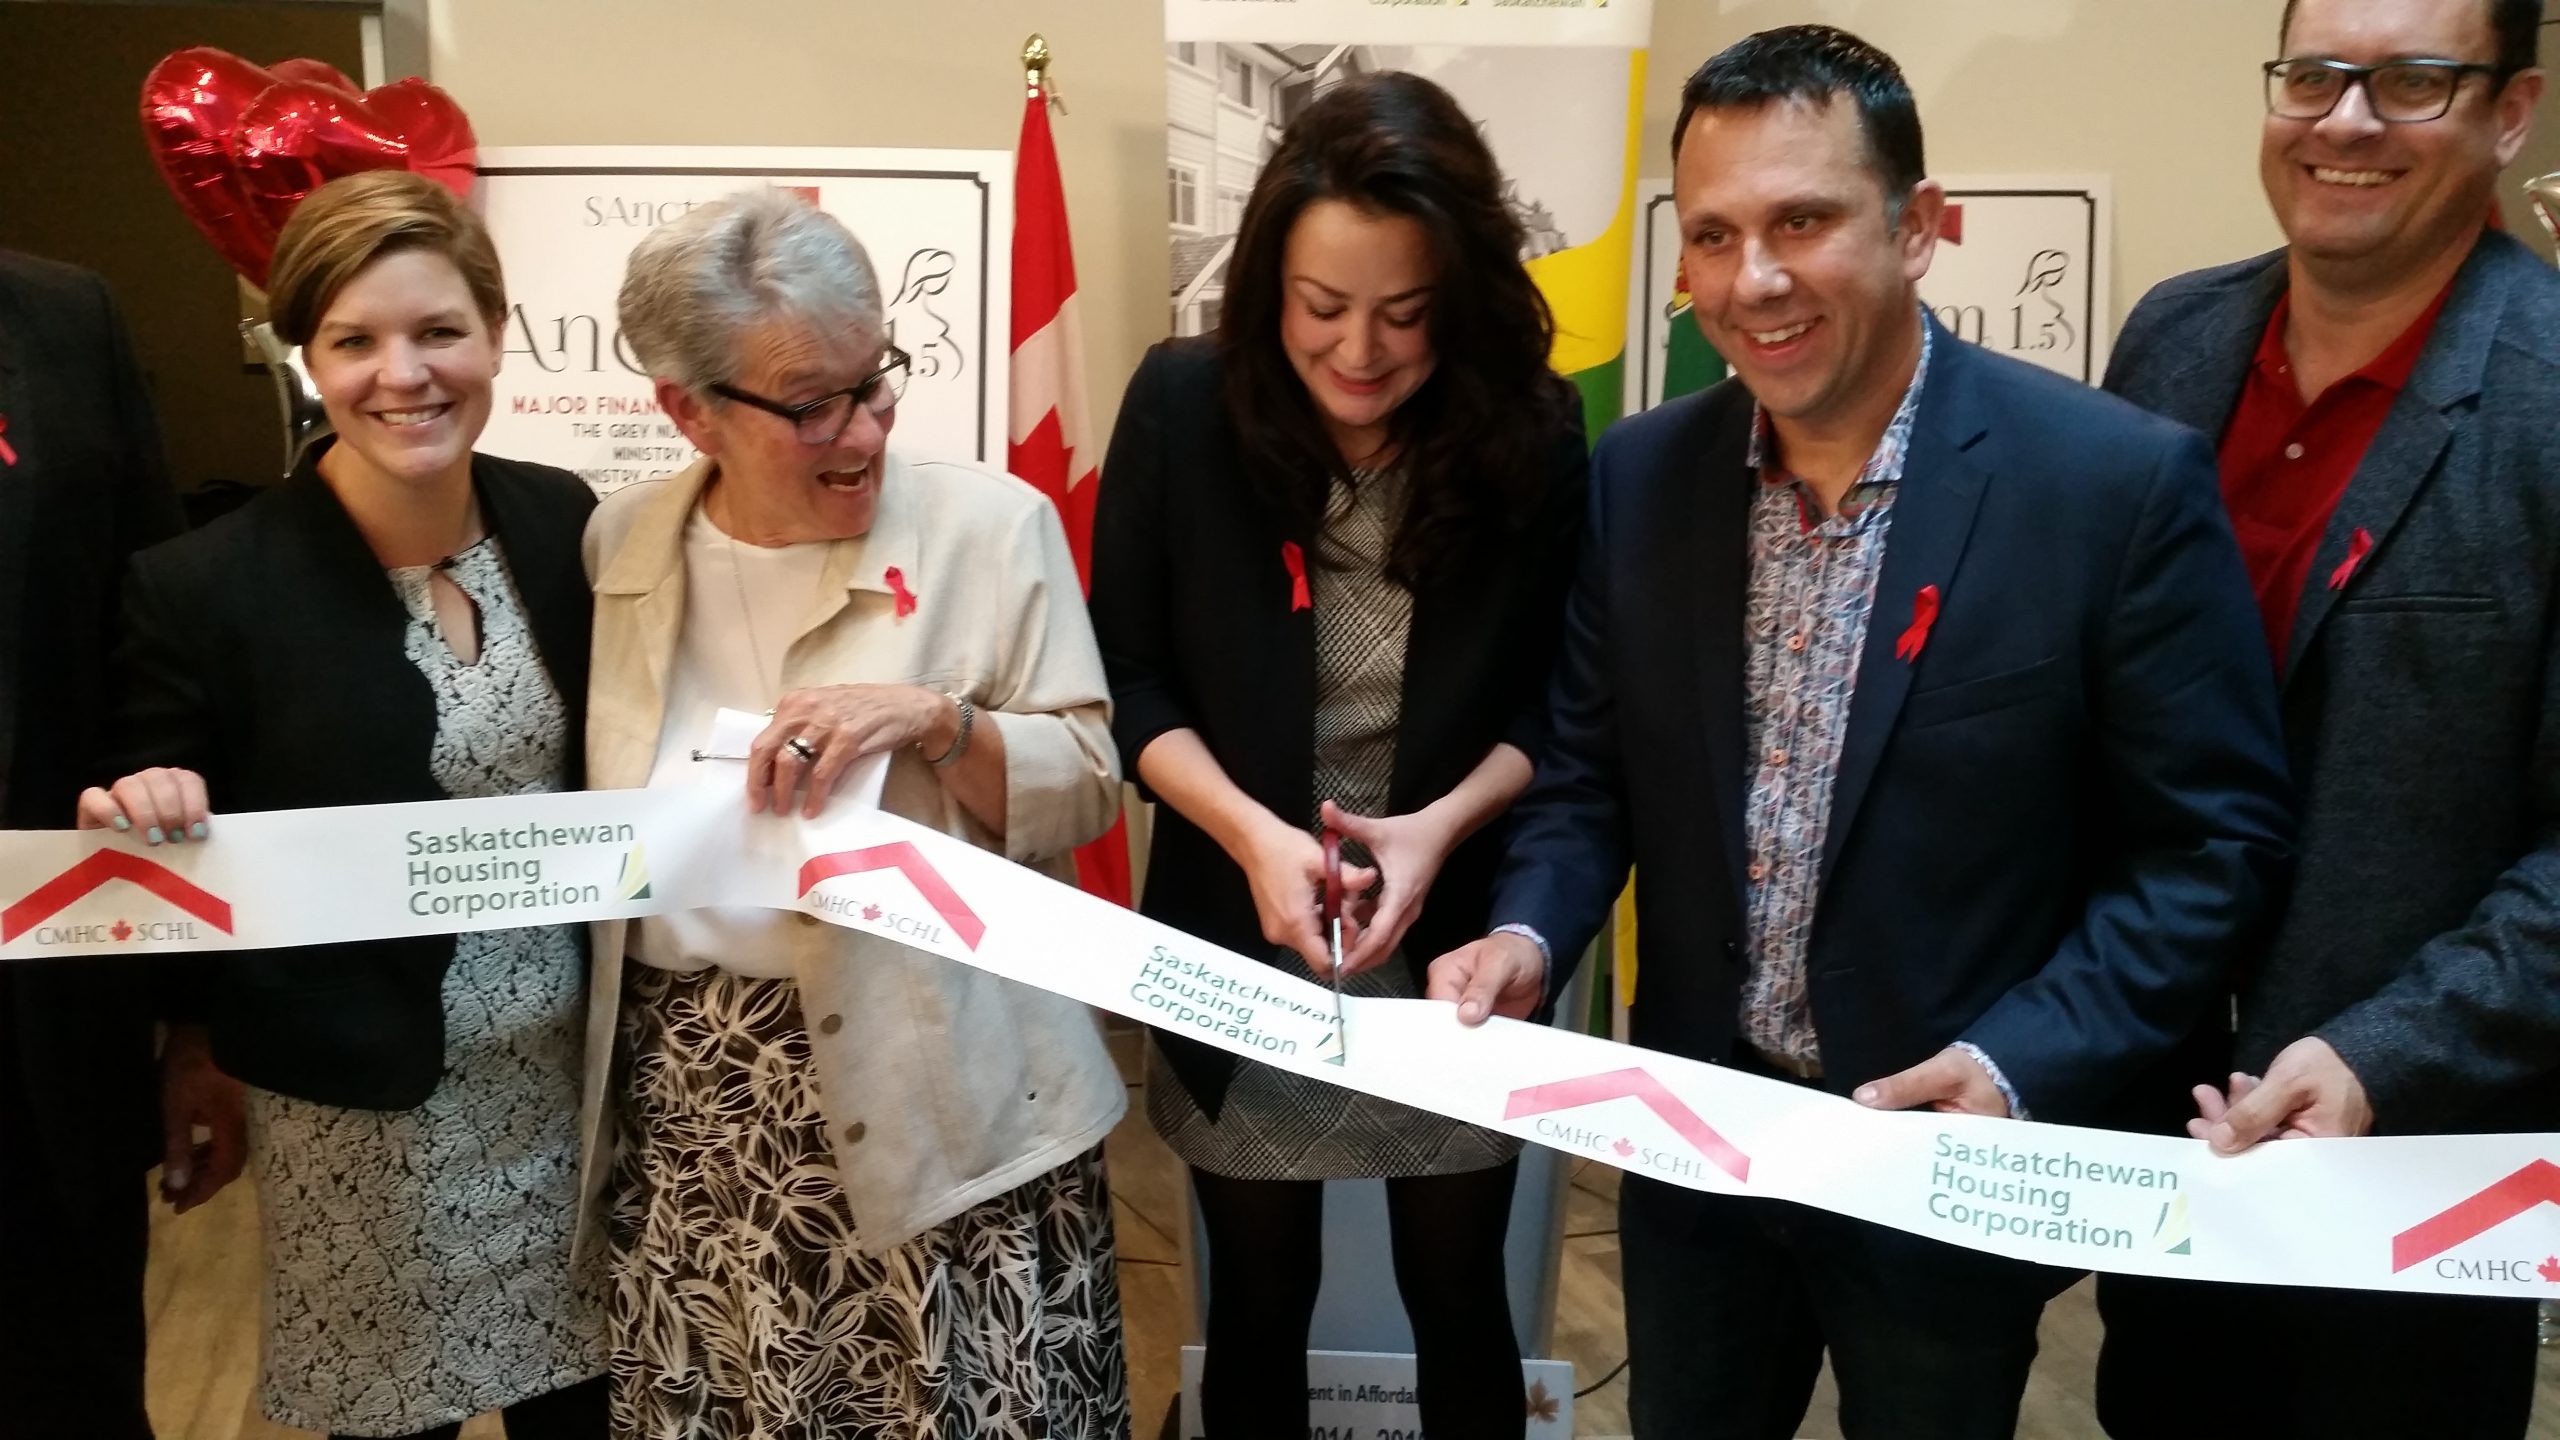 Home for HIV infected mothers opens in Saskatoon